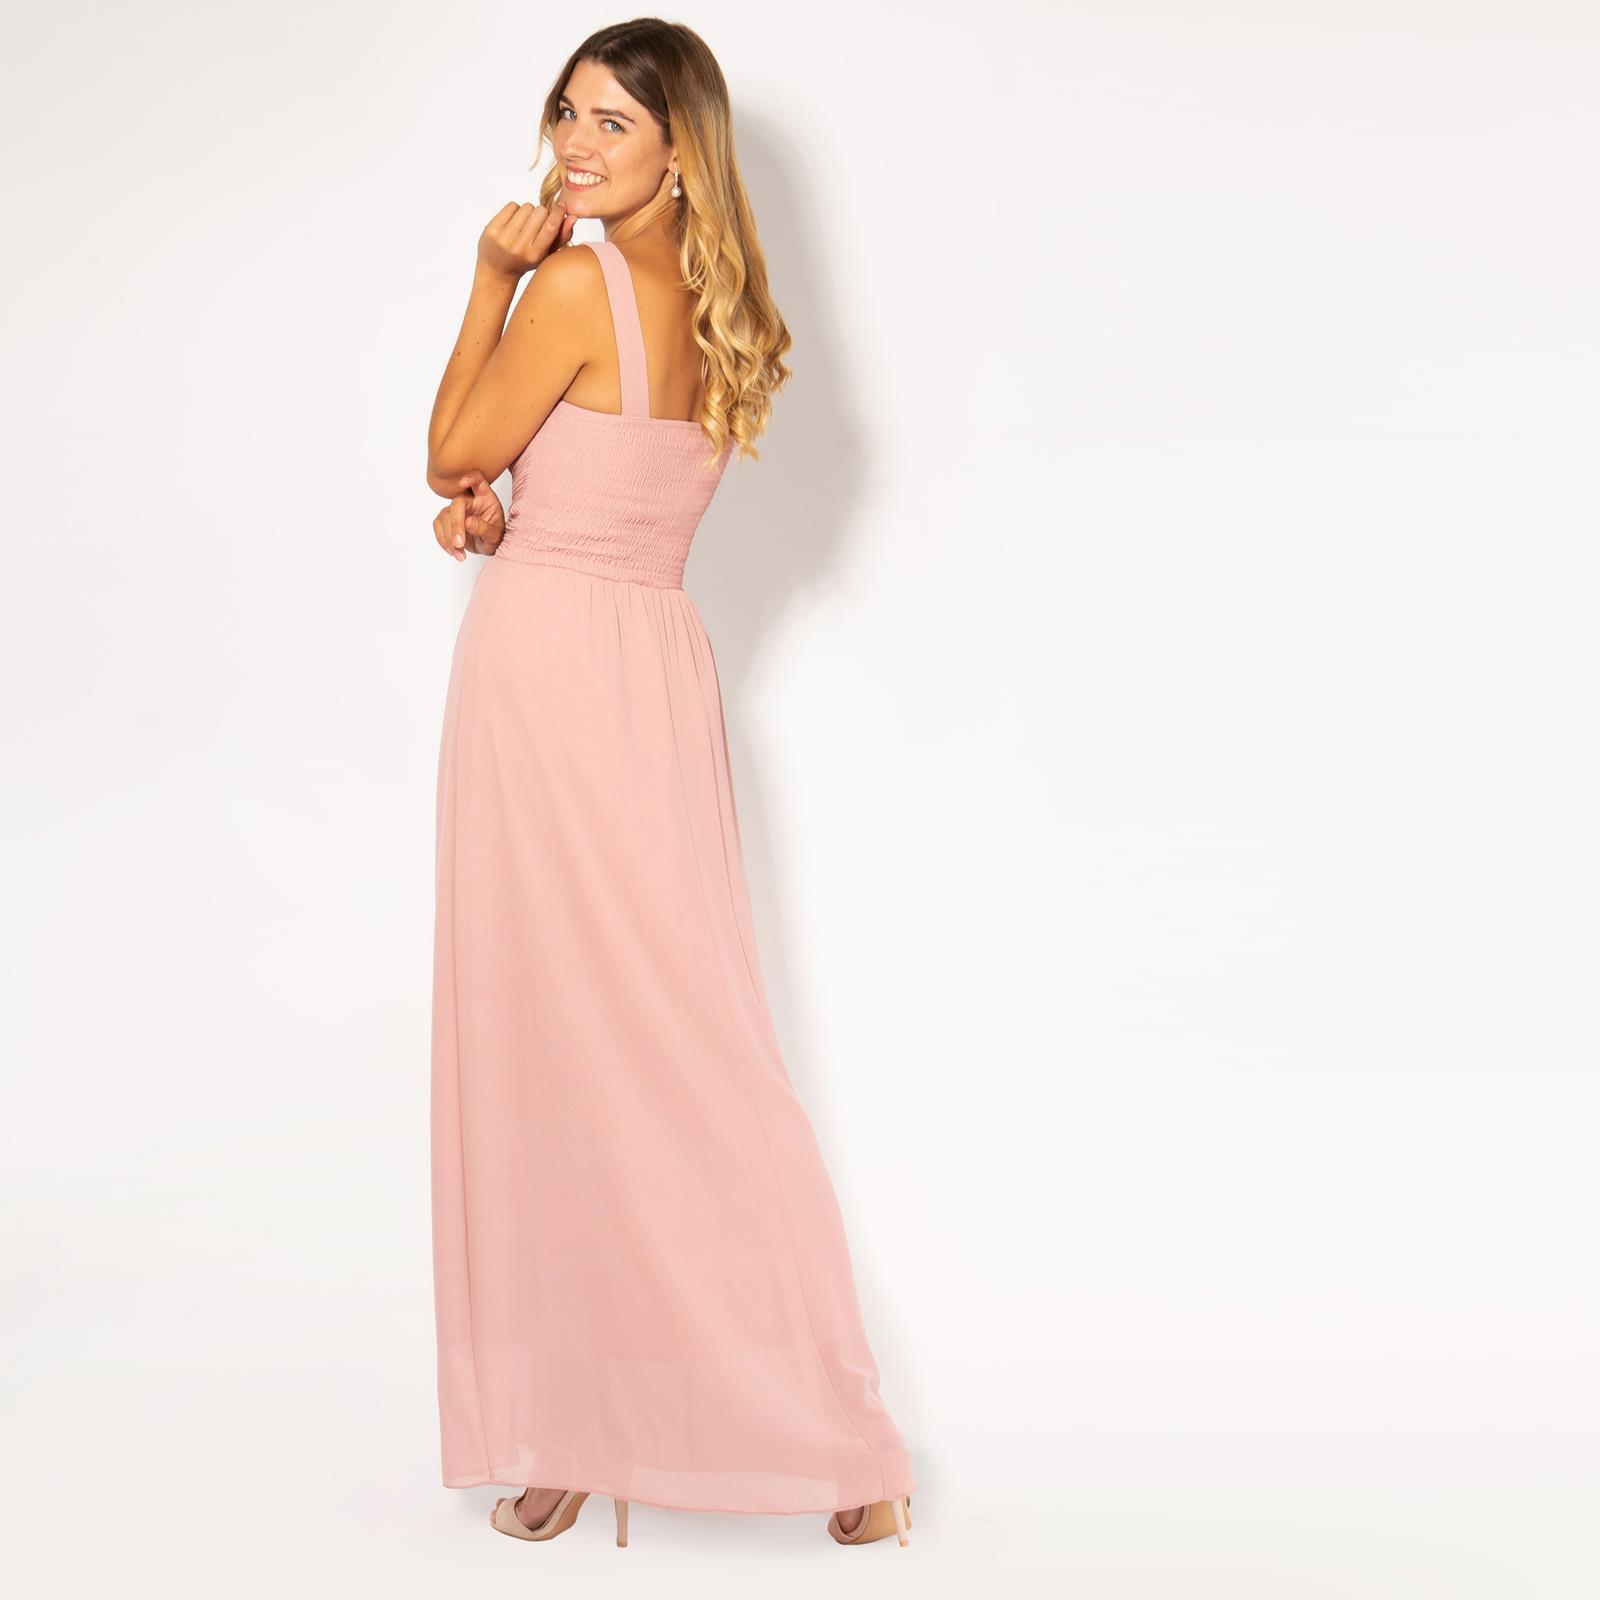 Womens-Long-Pleated-Maxi-Dress-Mesh-Neck-Ladies-Wedding-Evening-Party-Prom-Gown thumbnail 3